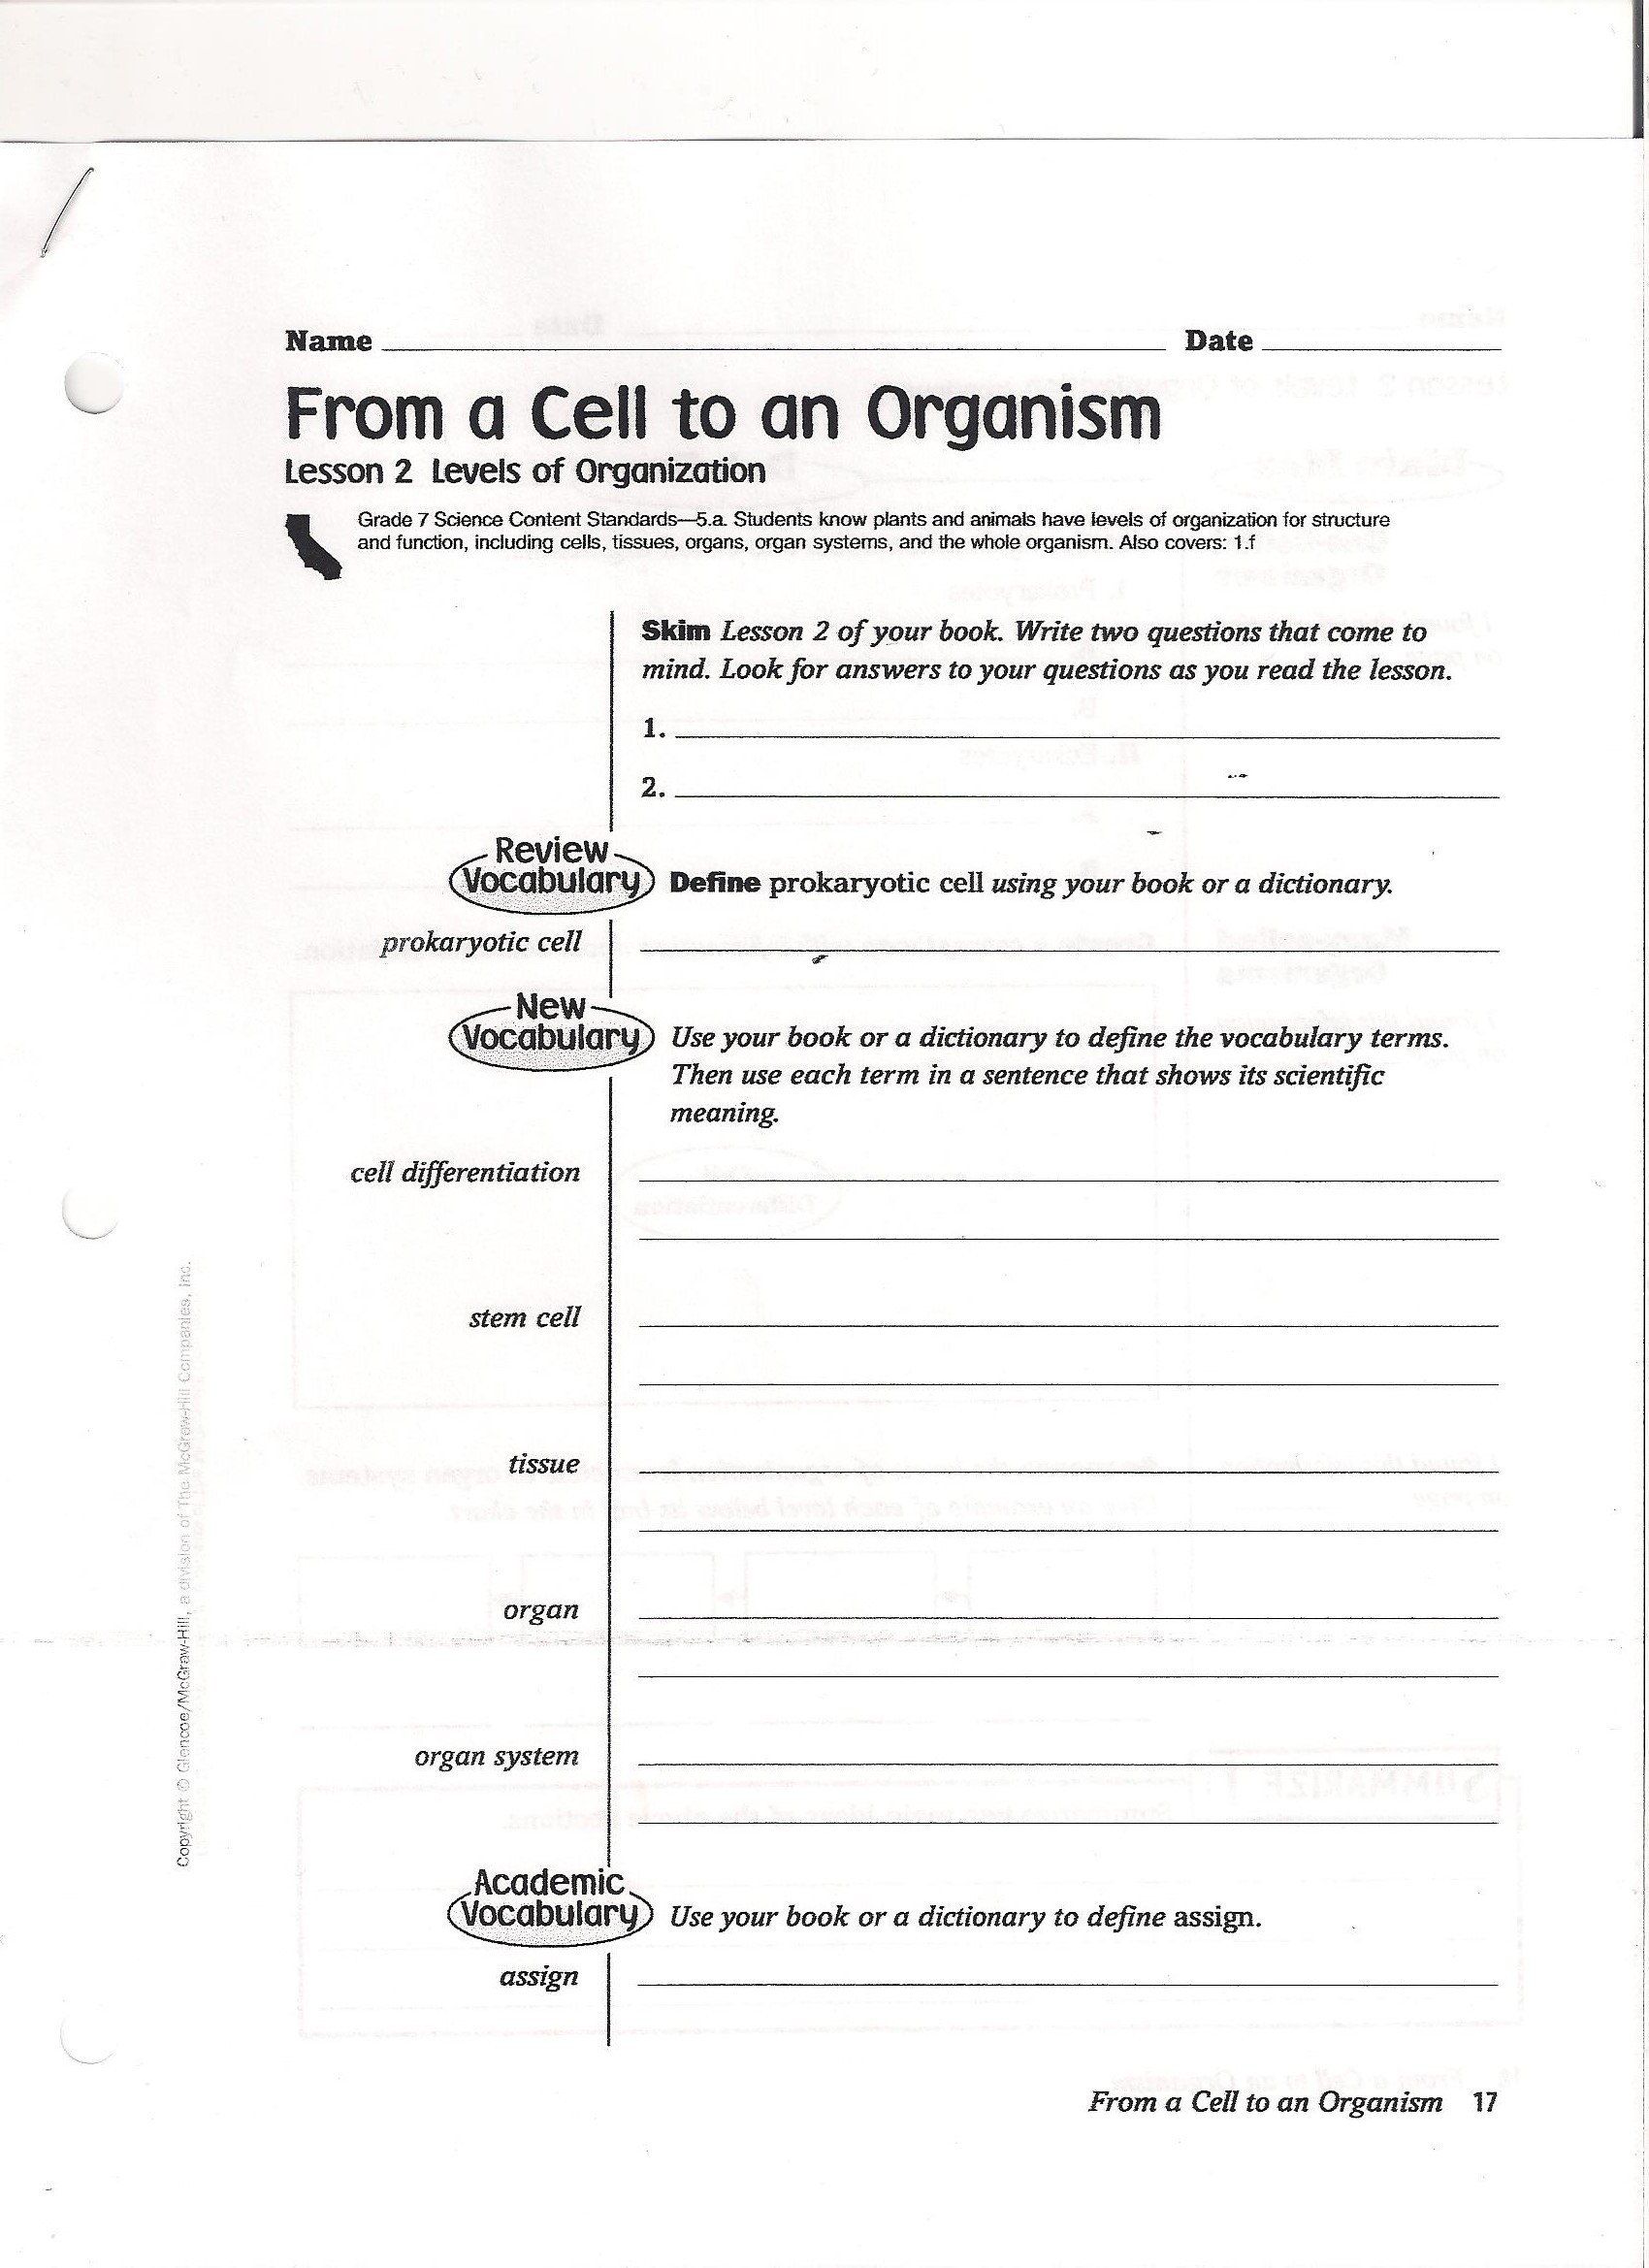 7th grade science mrs winters7th and 8th glencoe study guide worksheets math fraction